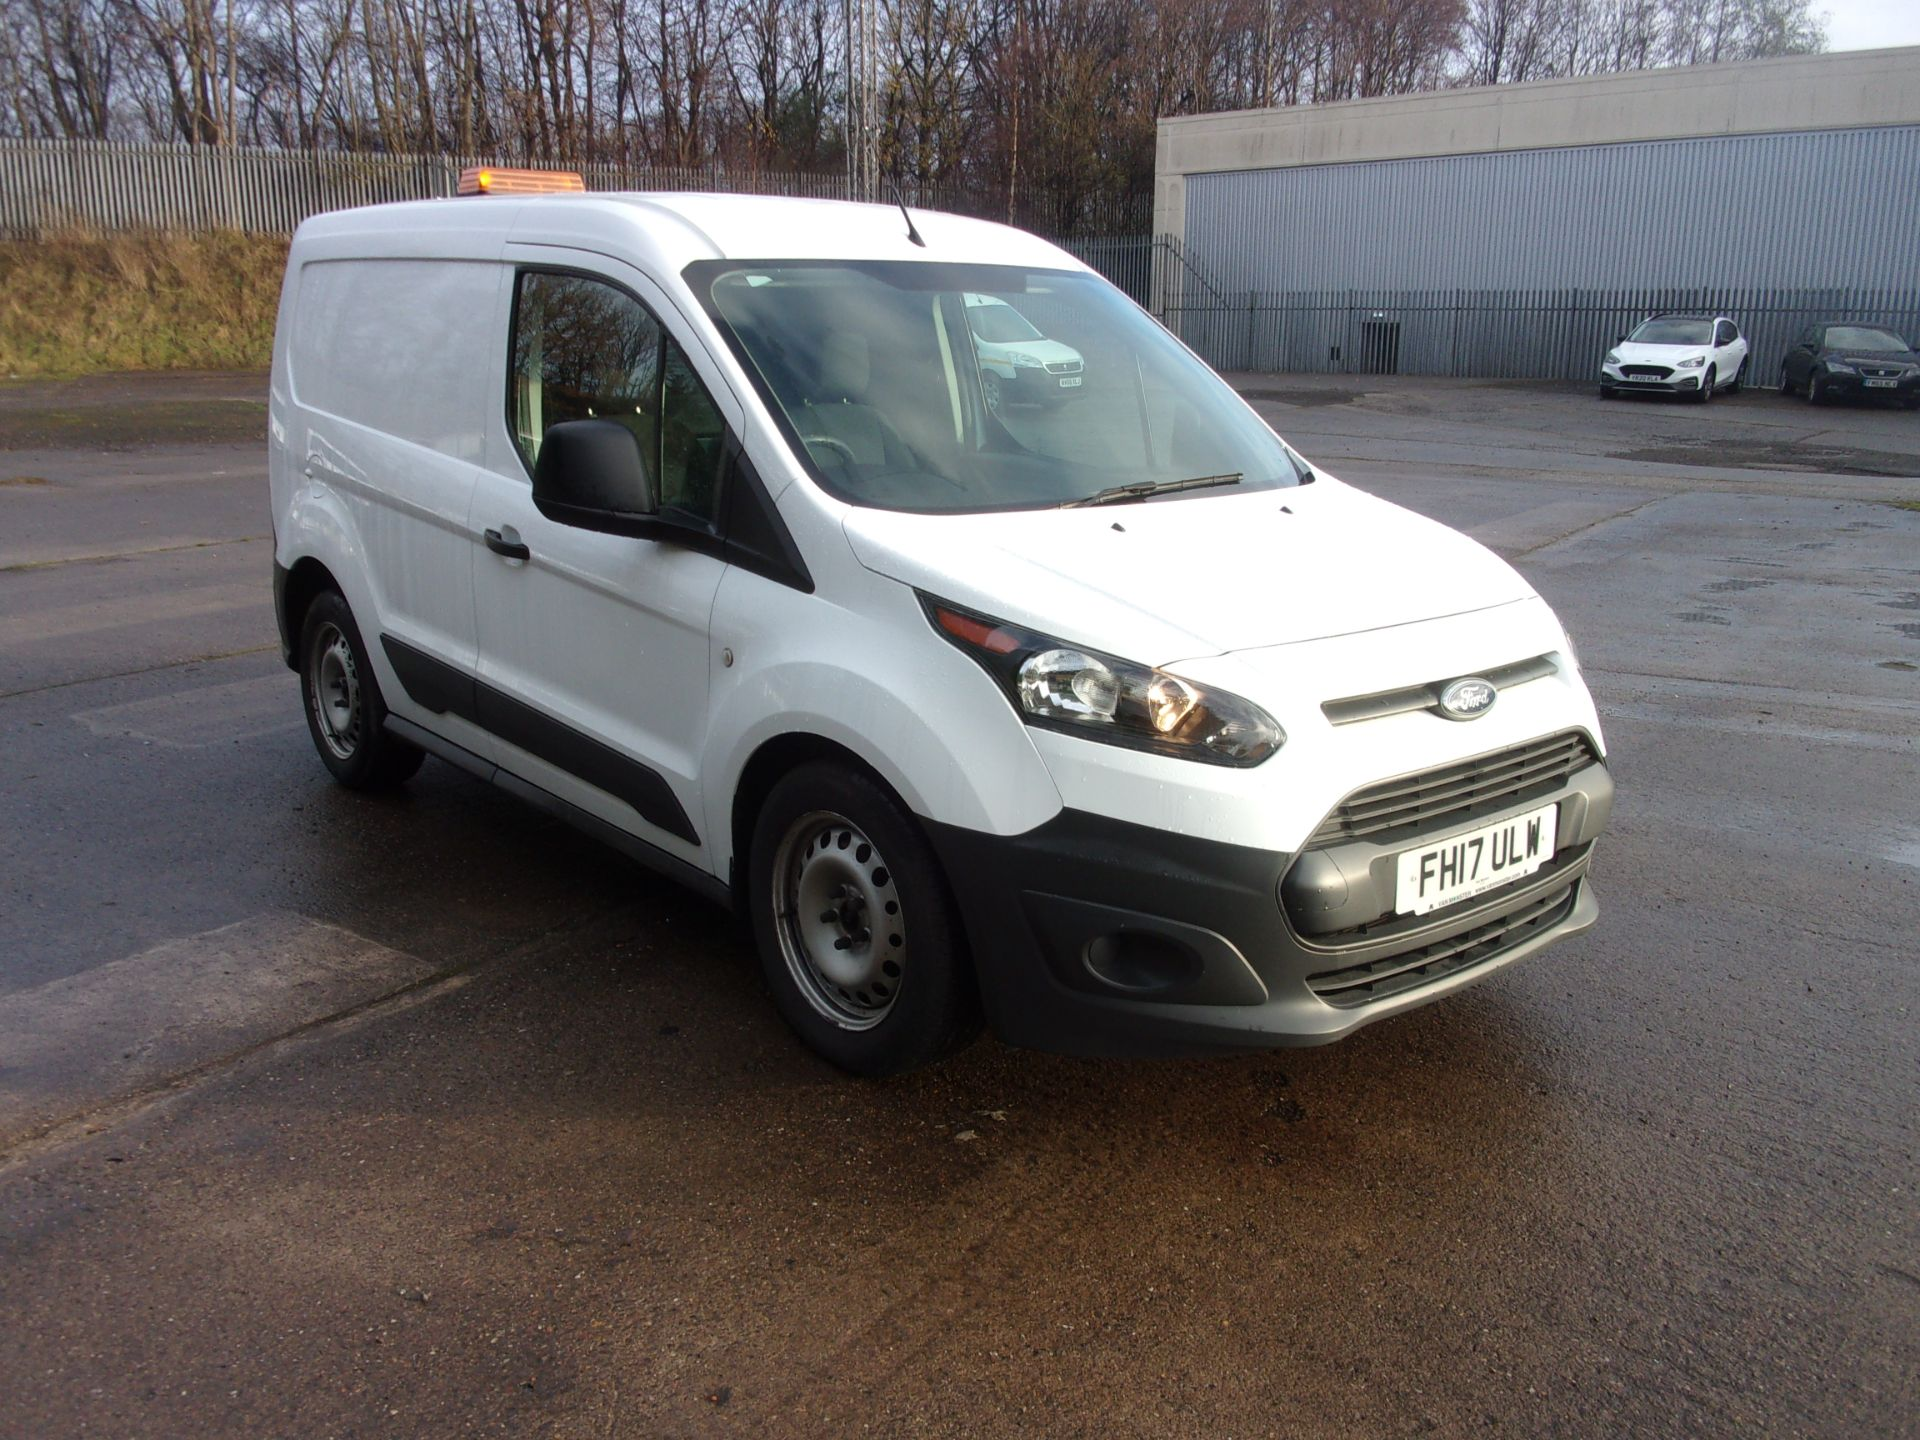 2017 Ford Transit Connect 200 L1 DIESEL 1.5 TDCI 75PS VAN  (FH17ULW)